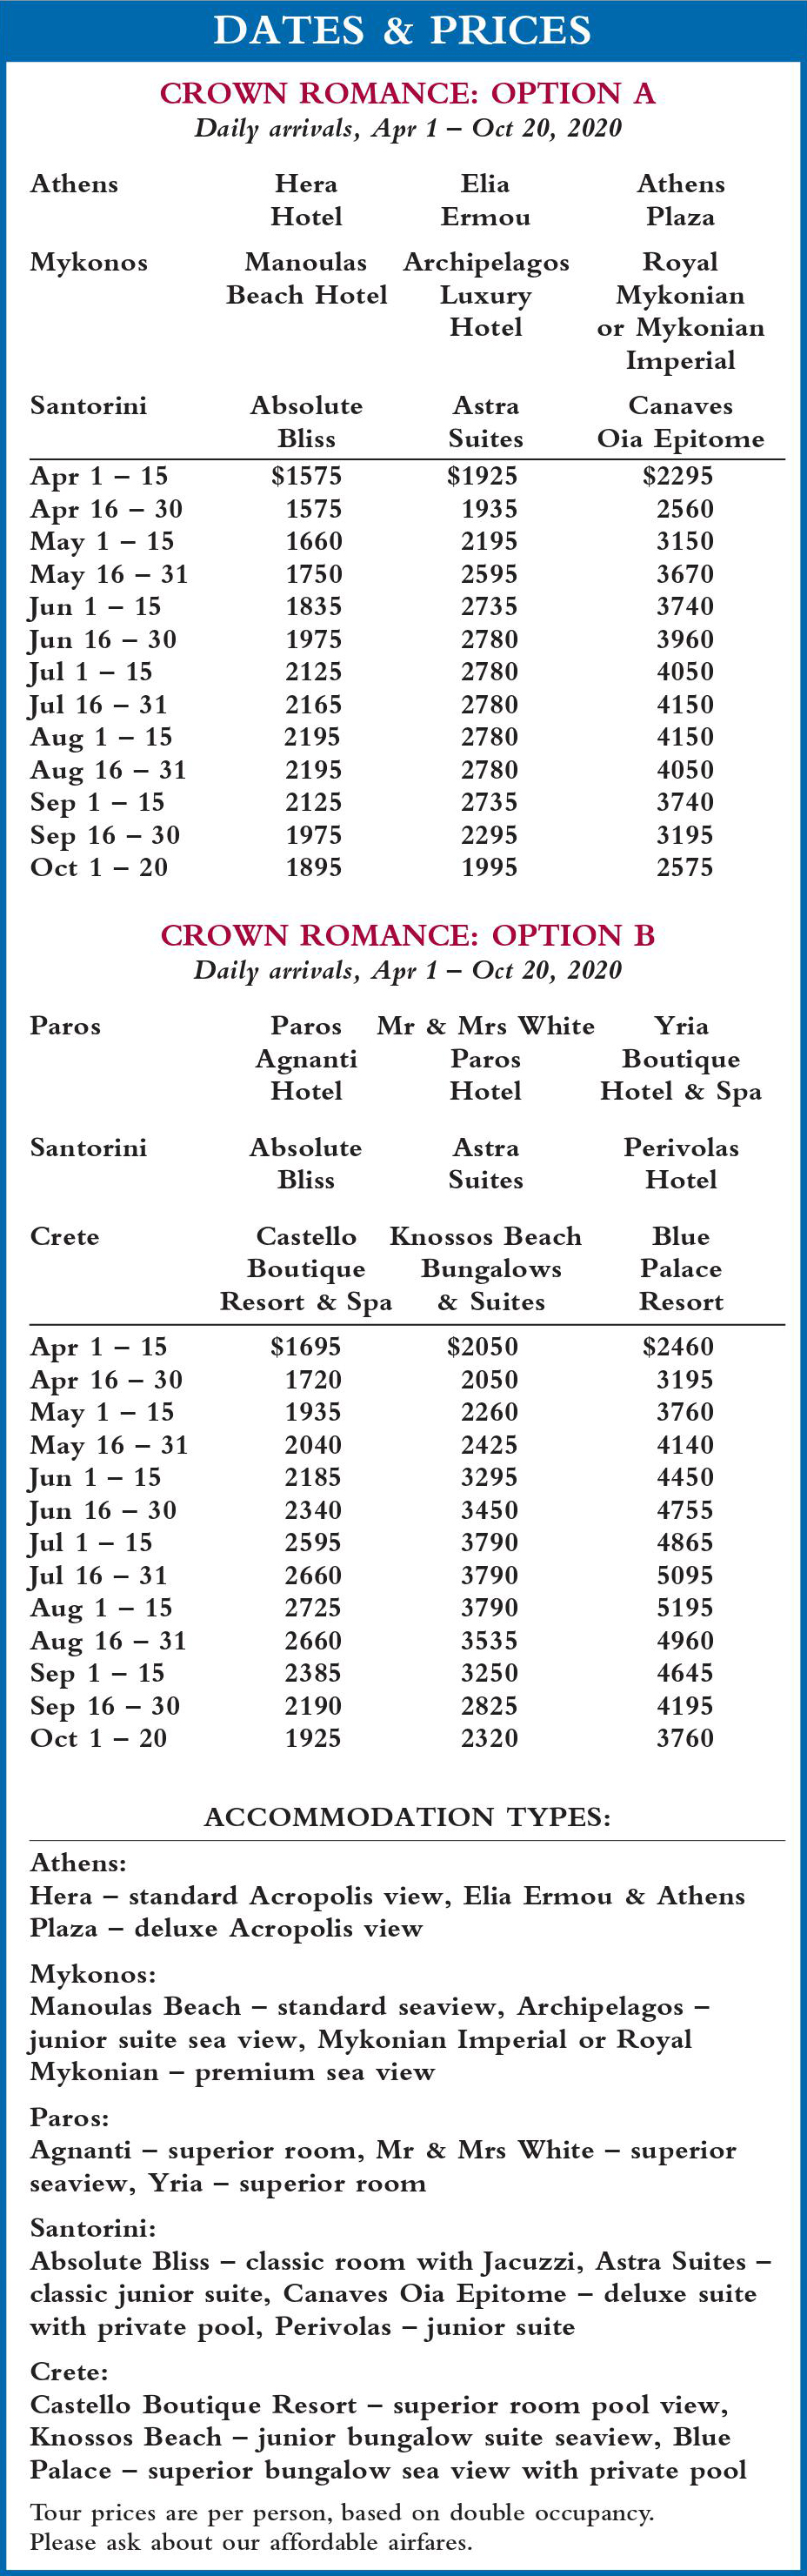 Crown Romance Dates and Prices 2020